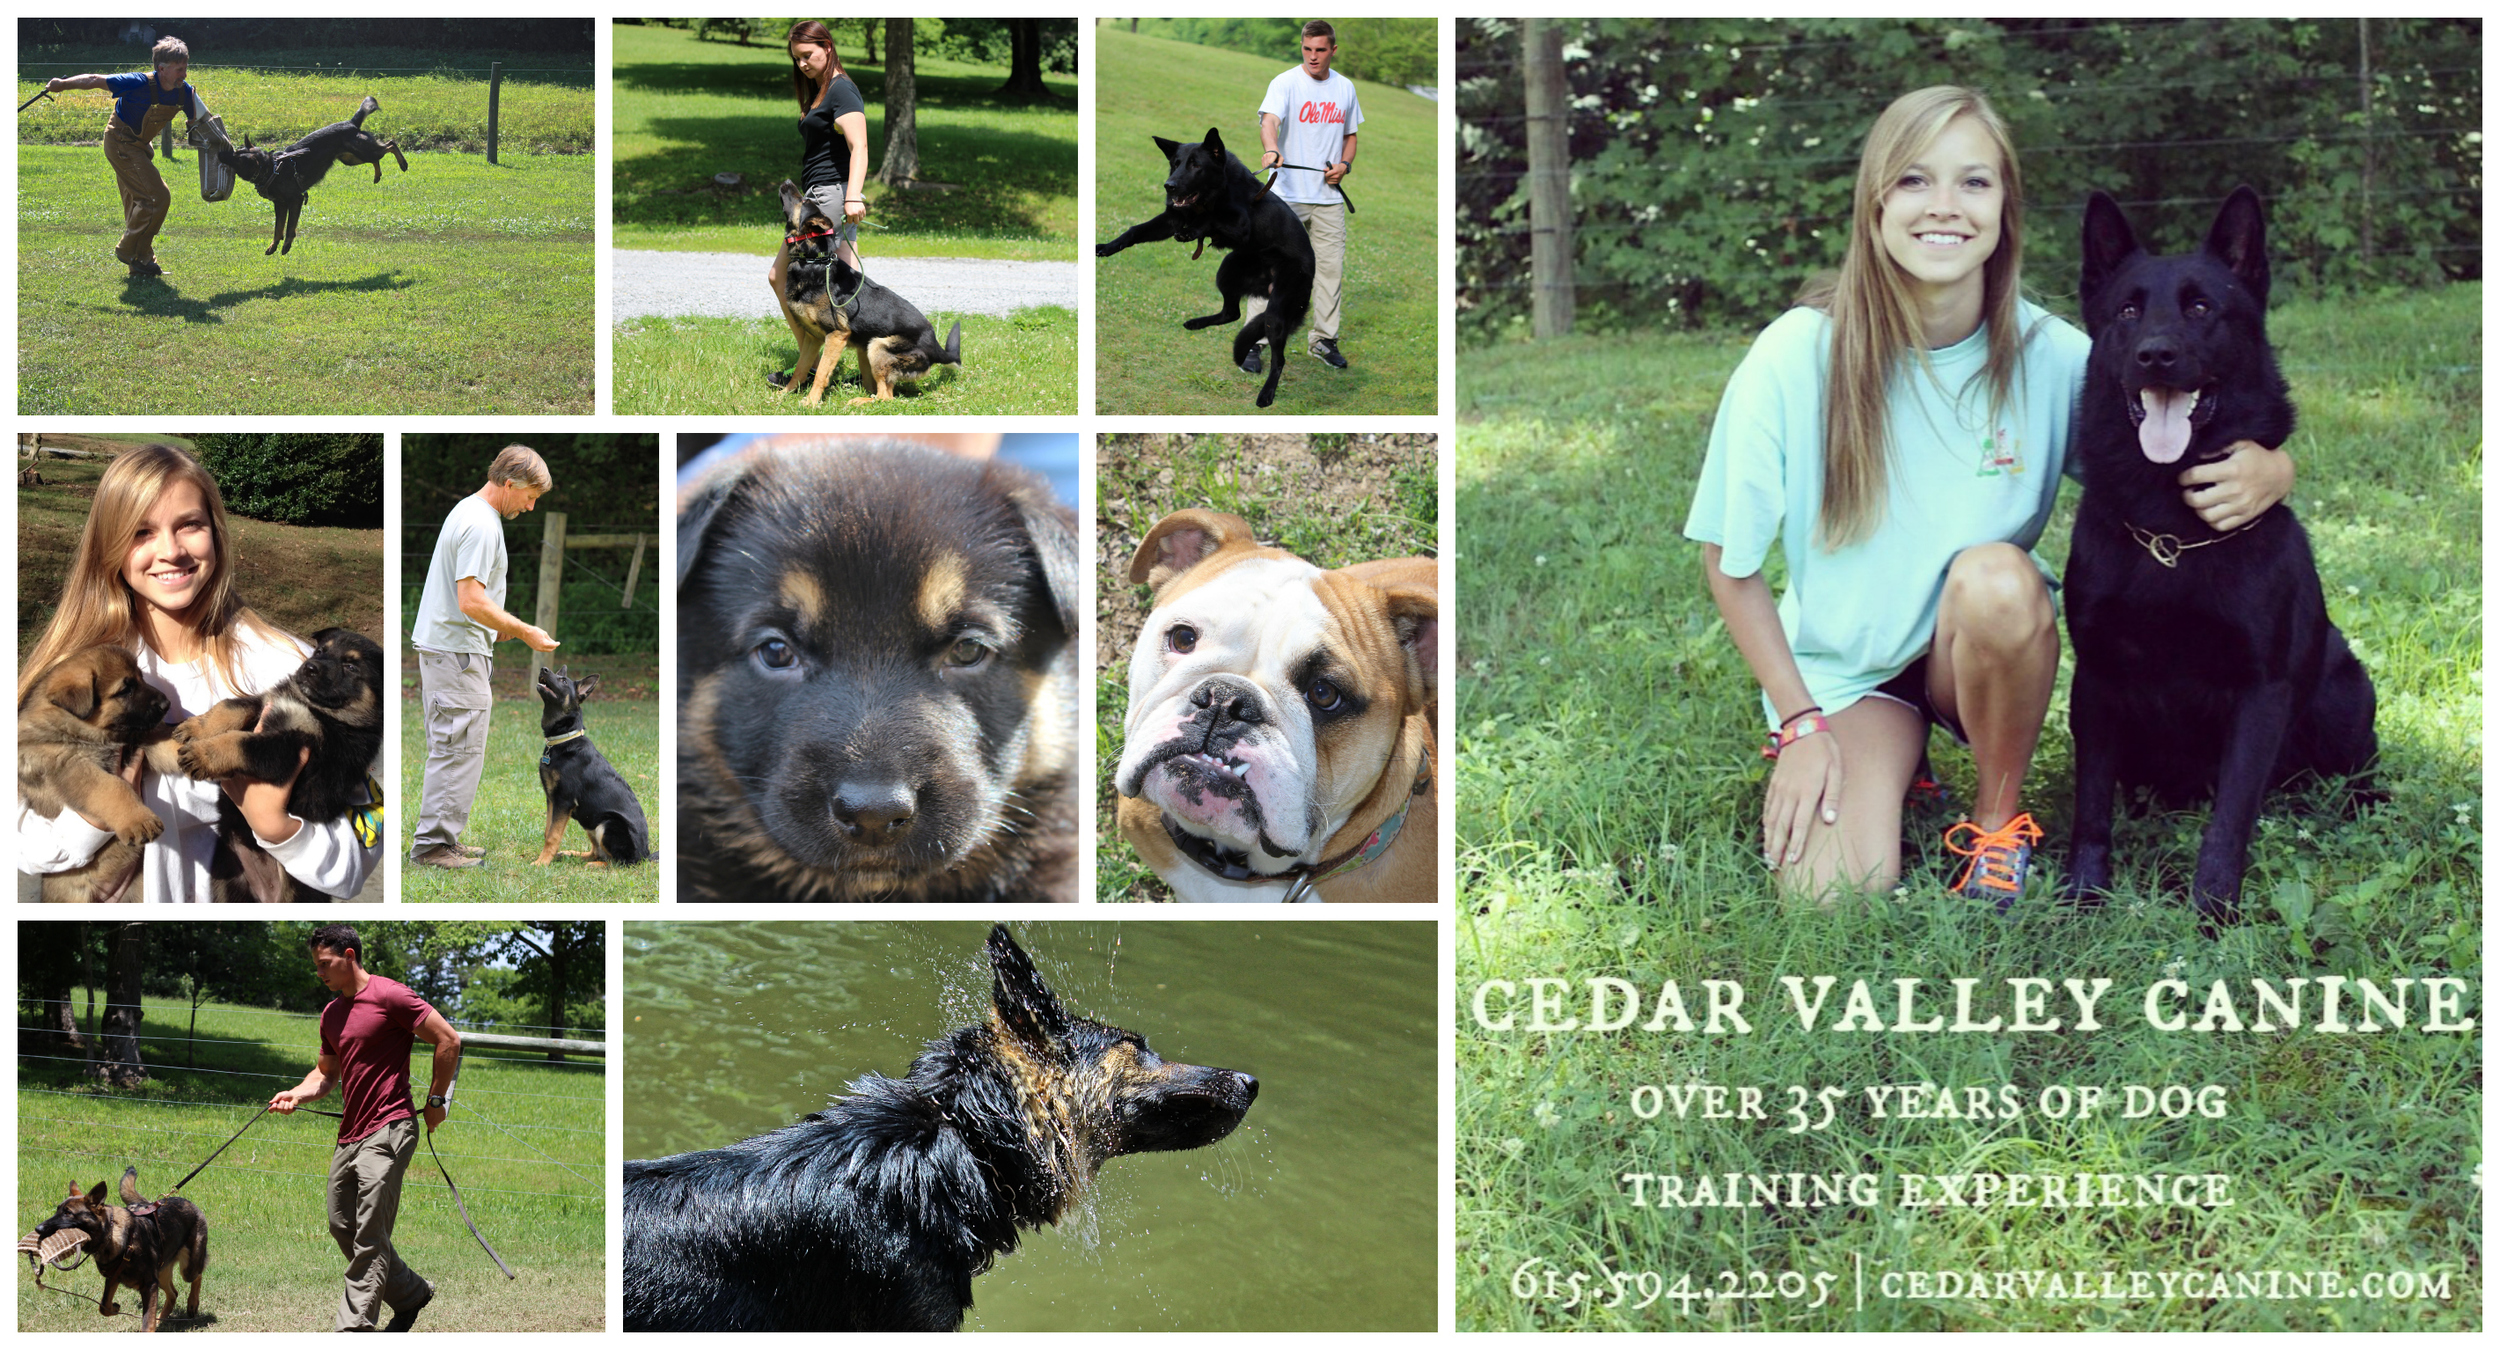 This is Cedar Valley Canine